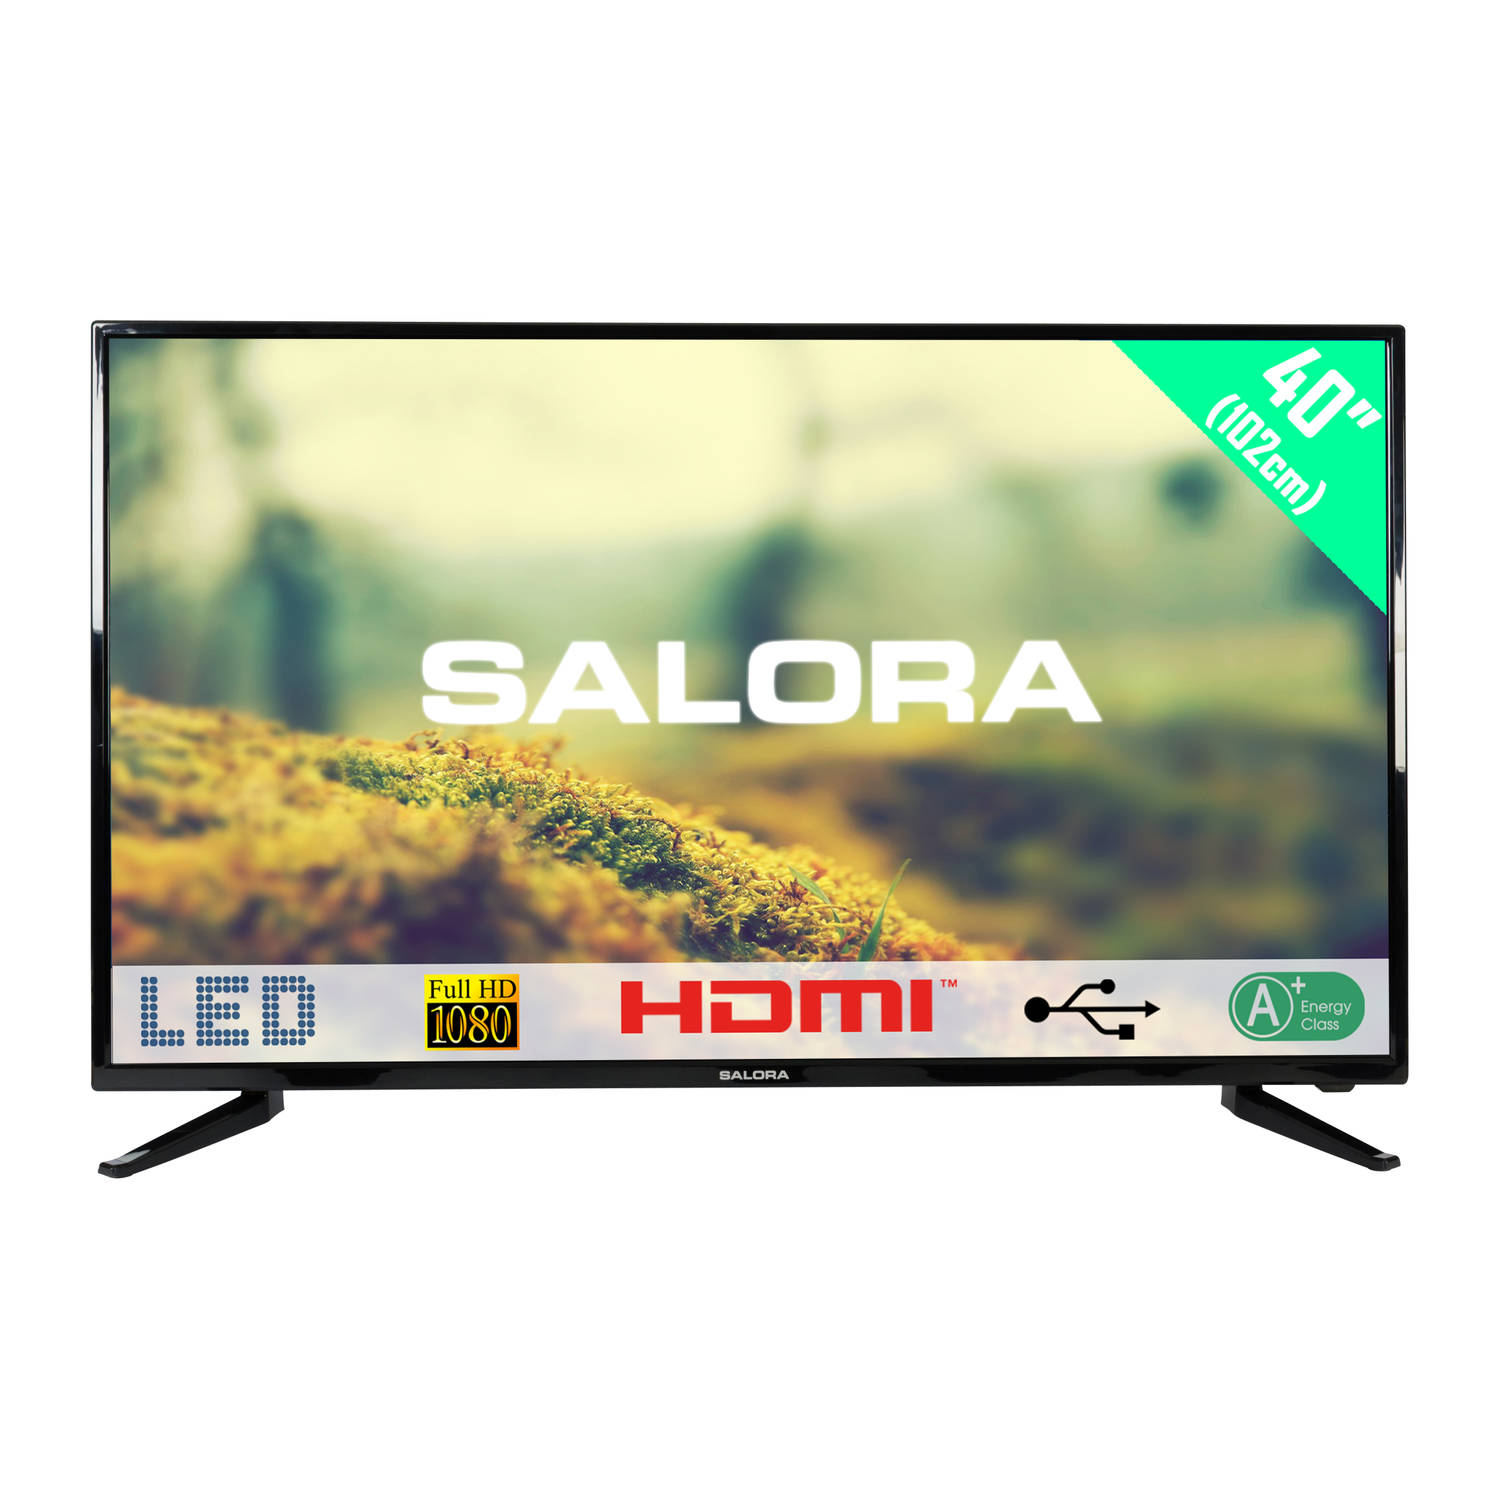 Salora full-hd led-televisie 40LED1500